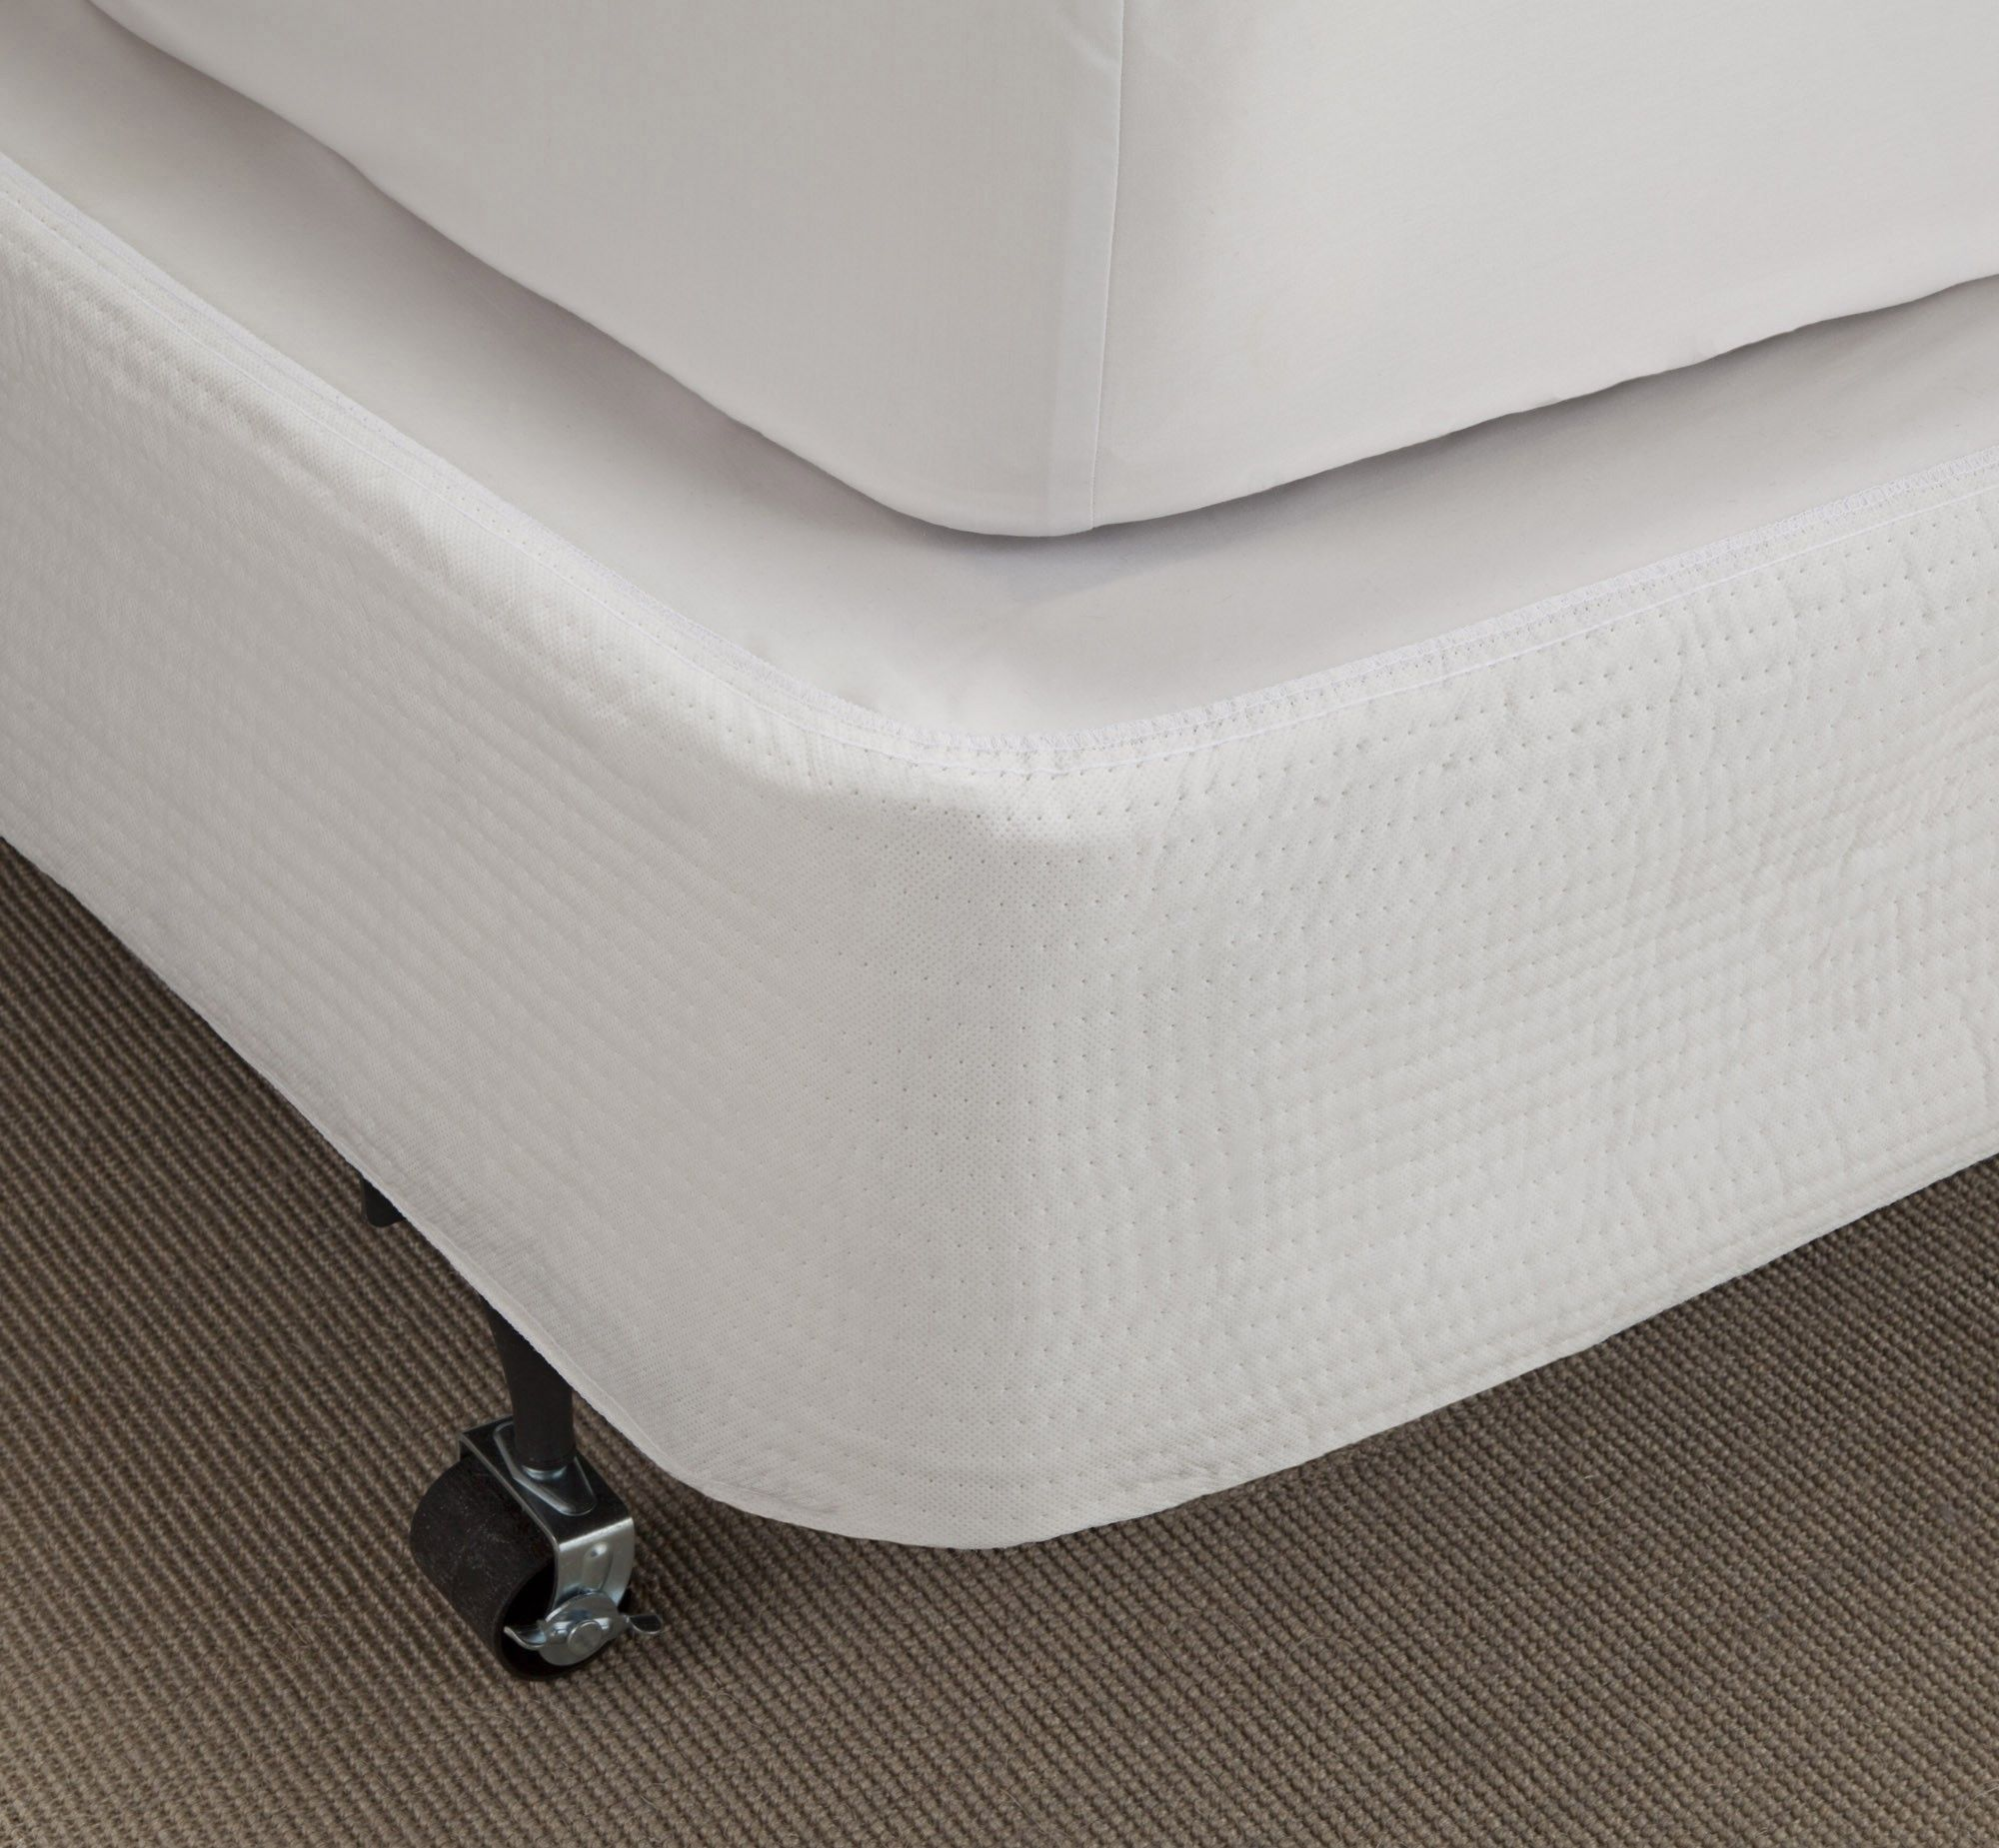 While the Live Free Mattress Cover offers one level of